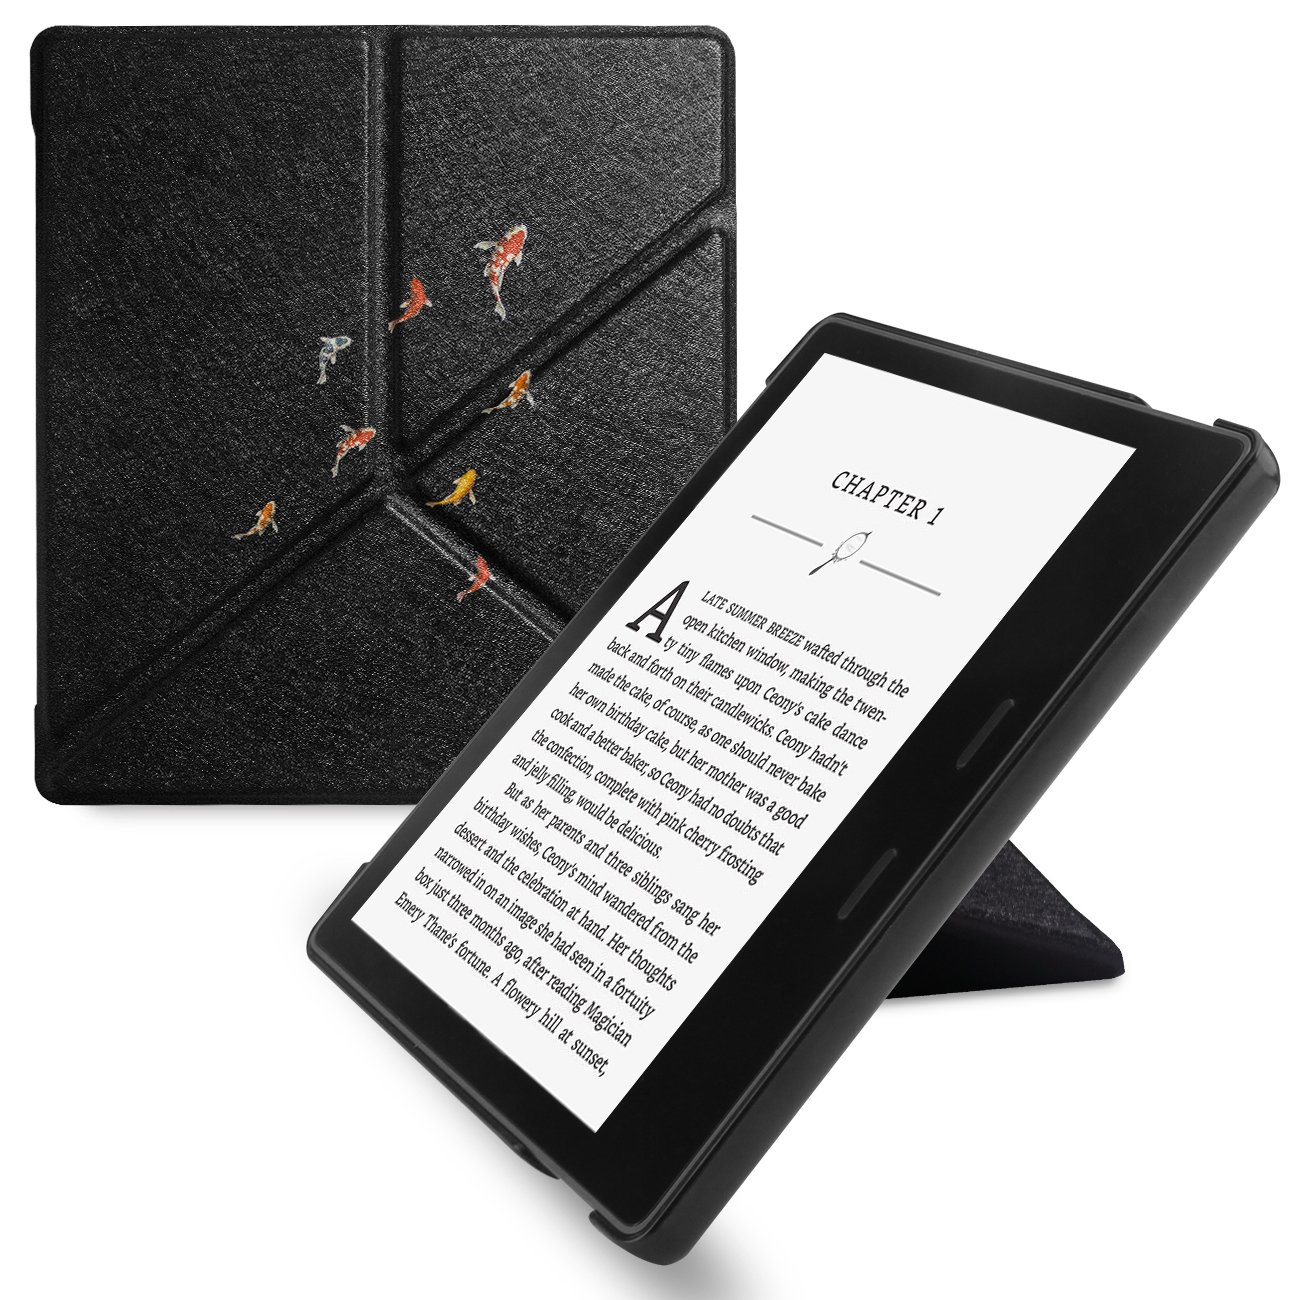 WALNEW Amazon Kindle Oasis Stand Case Cover Kindle Oasis Origami Case-Ultra Lightweight PU Leather Smart Cover for 7 Inch Kindle Oasis 2017, 9th Generation (Carp)